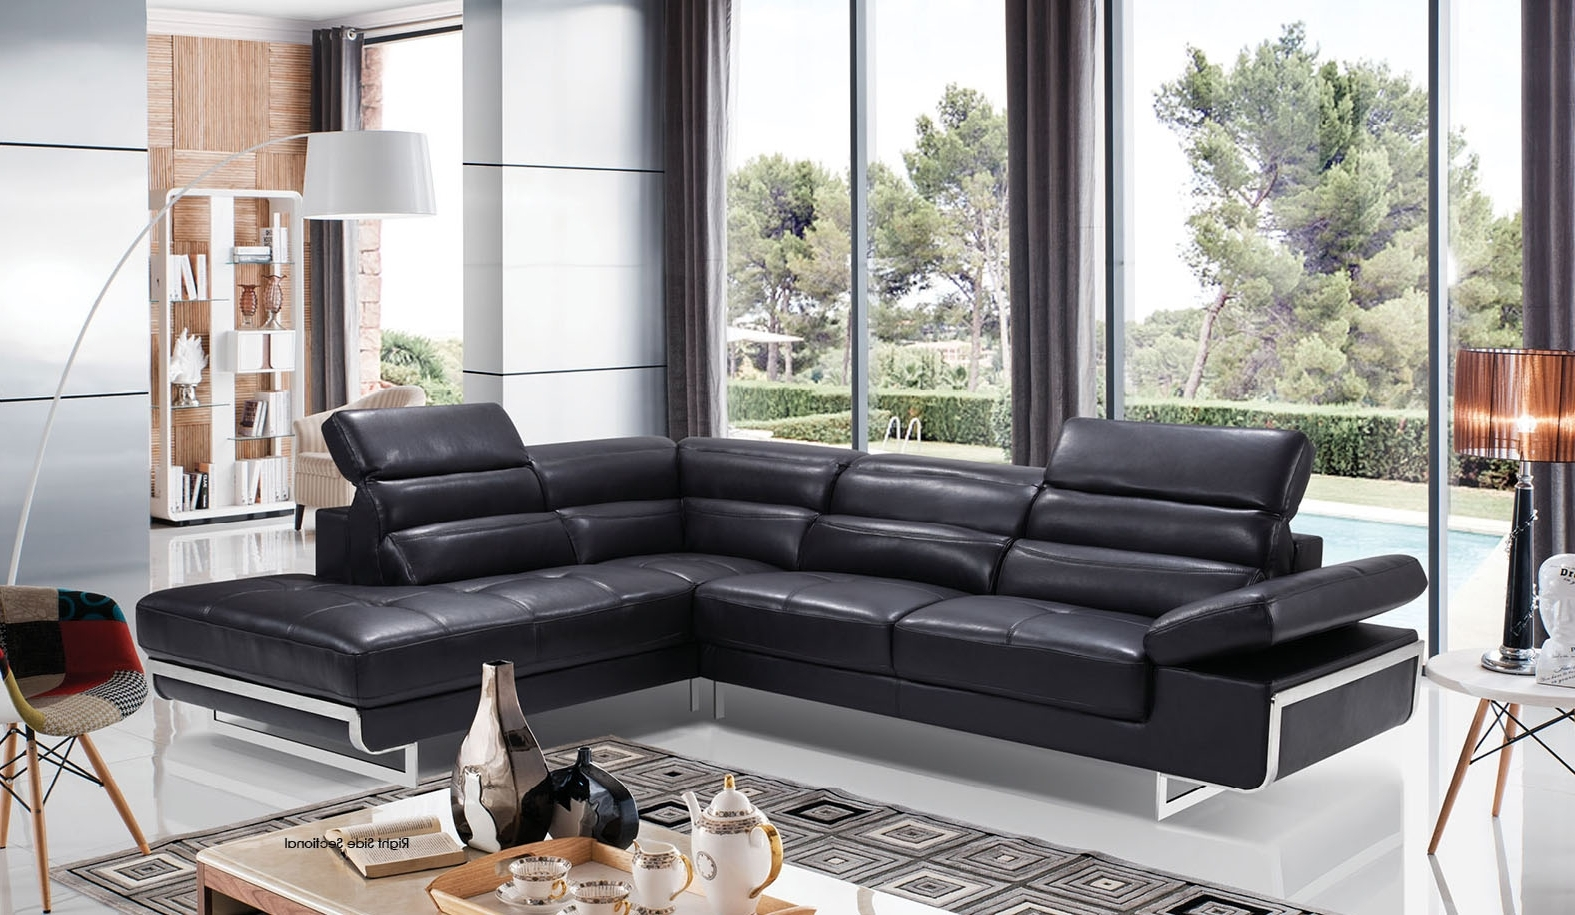 Most Recently Released High Class Italian Leather Living Room Furniture Jacksonville For Jacksonville Fl Sectional Sofas (View 7 of 15)